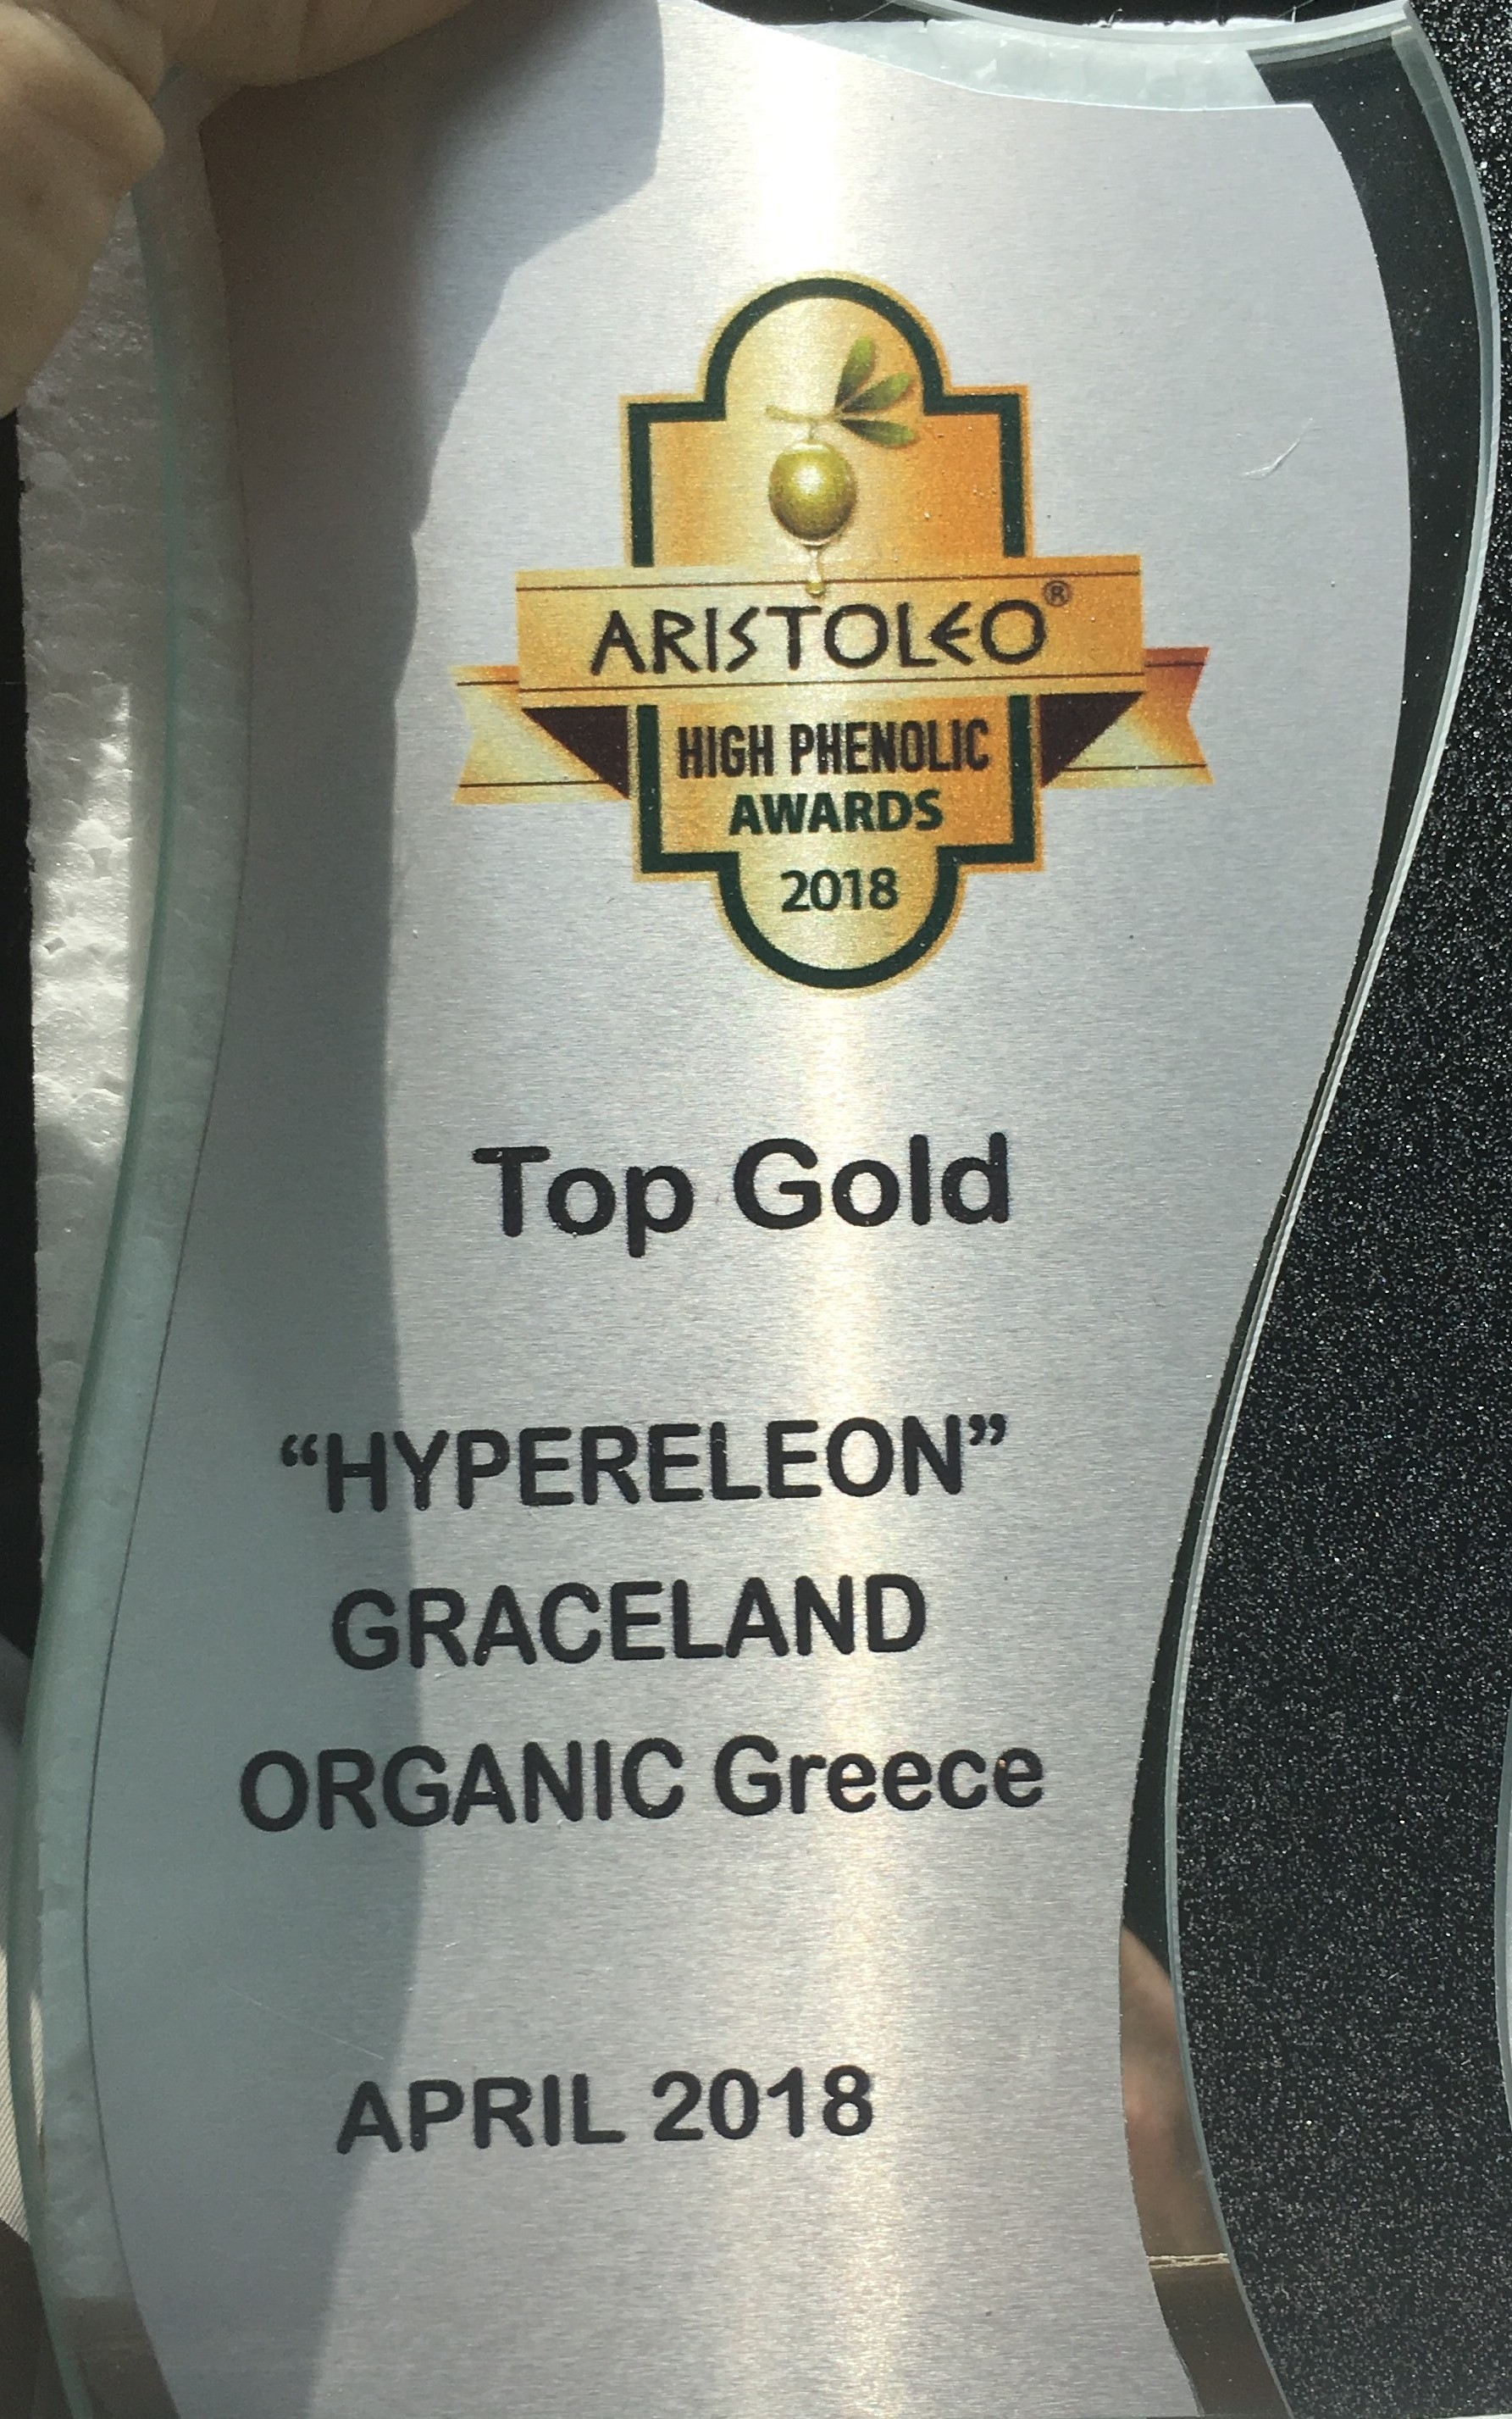 TOP GOLD ARISTOLEO HIGH PHENOLIC AWARD 2018 for Extremely High Phenolic Content & Great Taste for the GRACELAND TEAM (G-TEAM) , regarding the